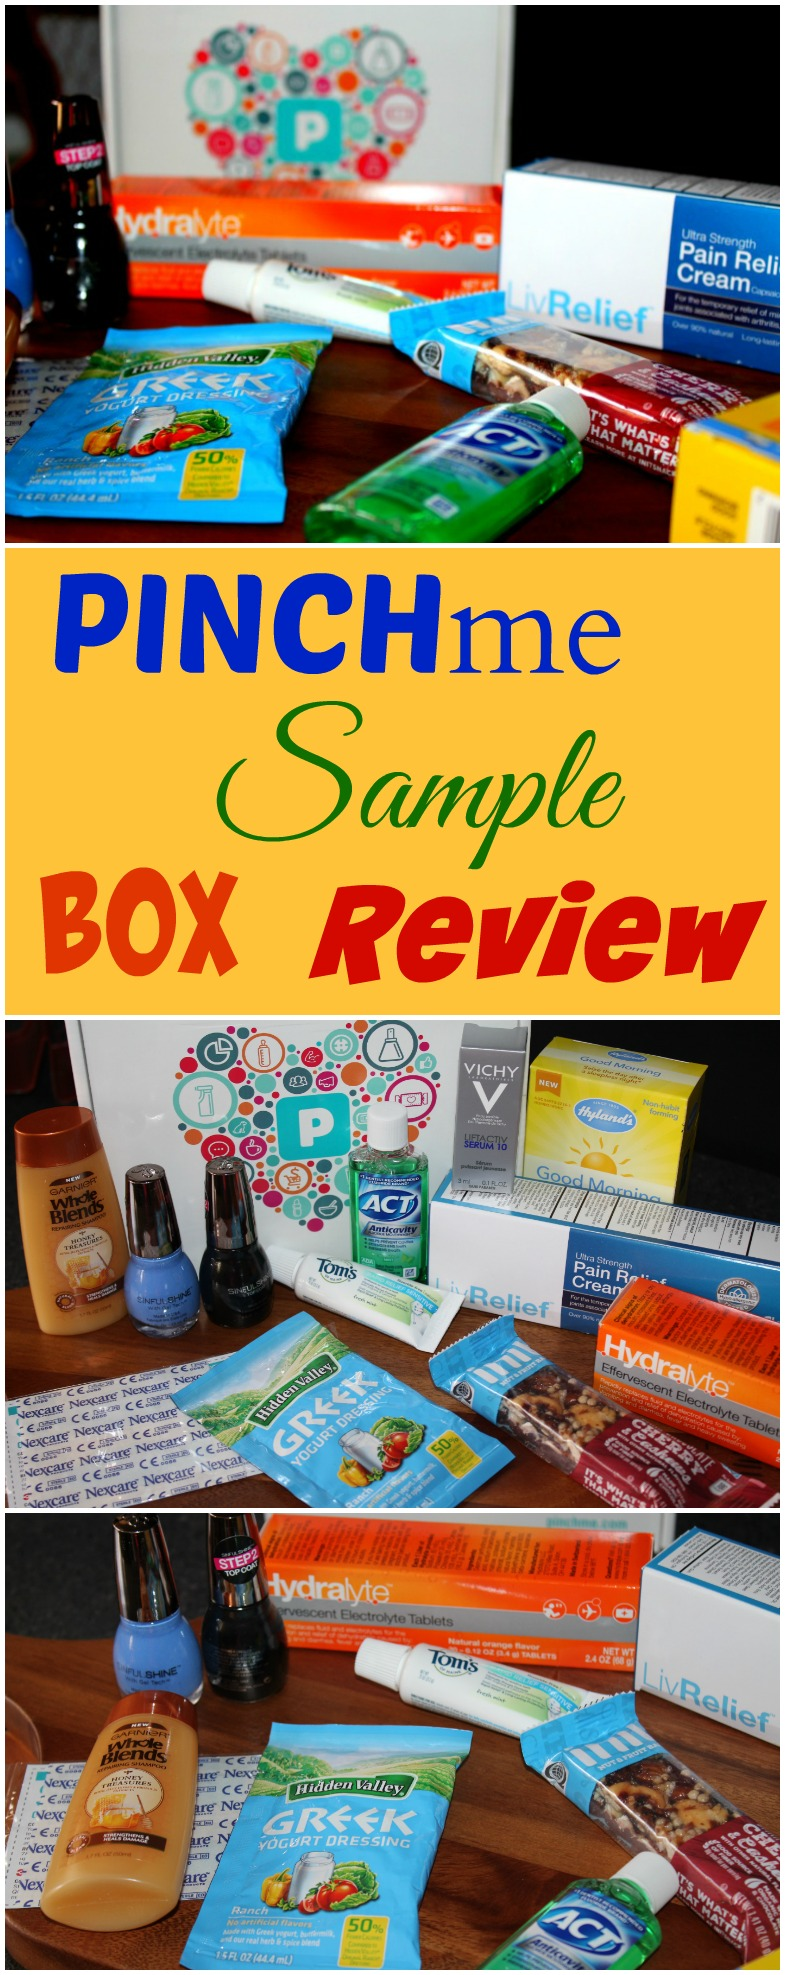 pinch me samples reviews